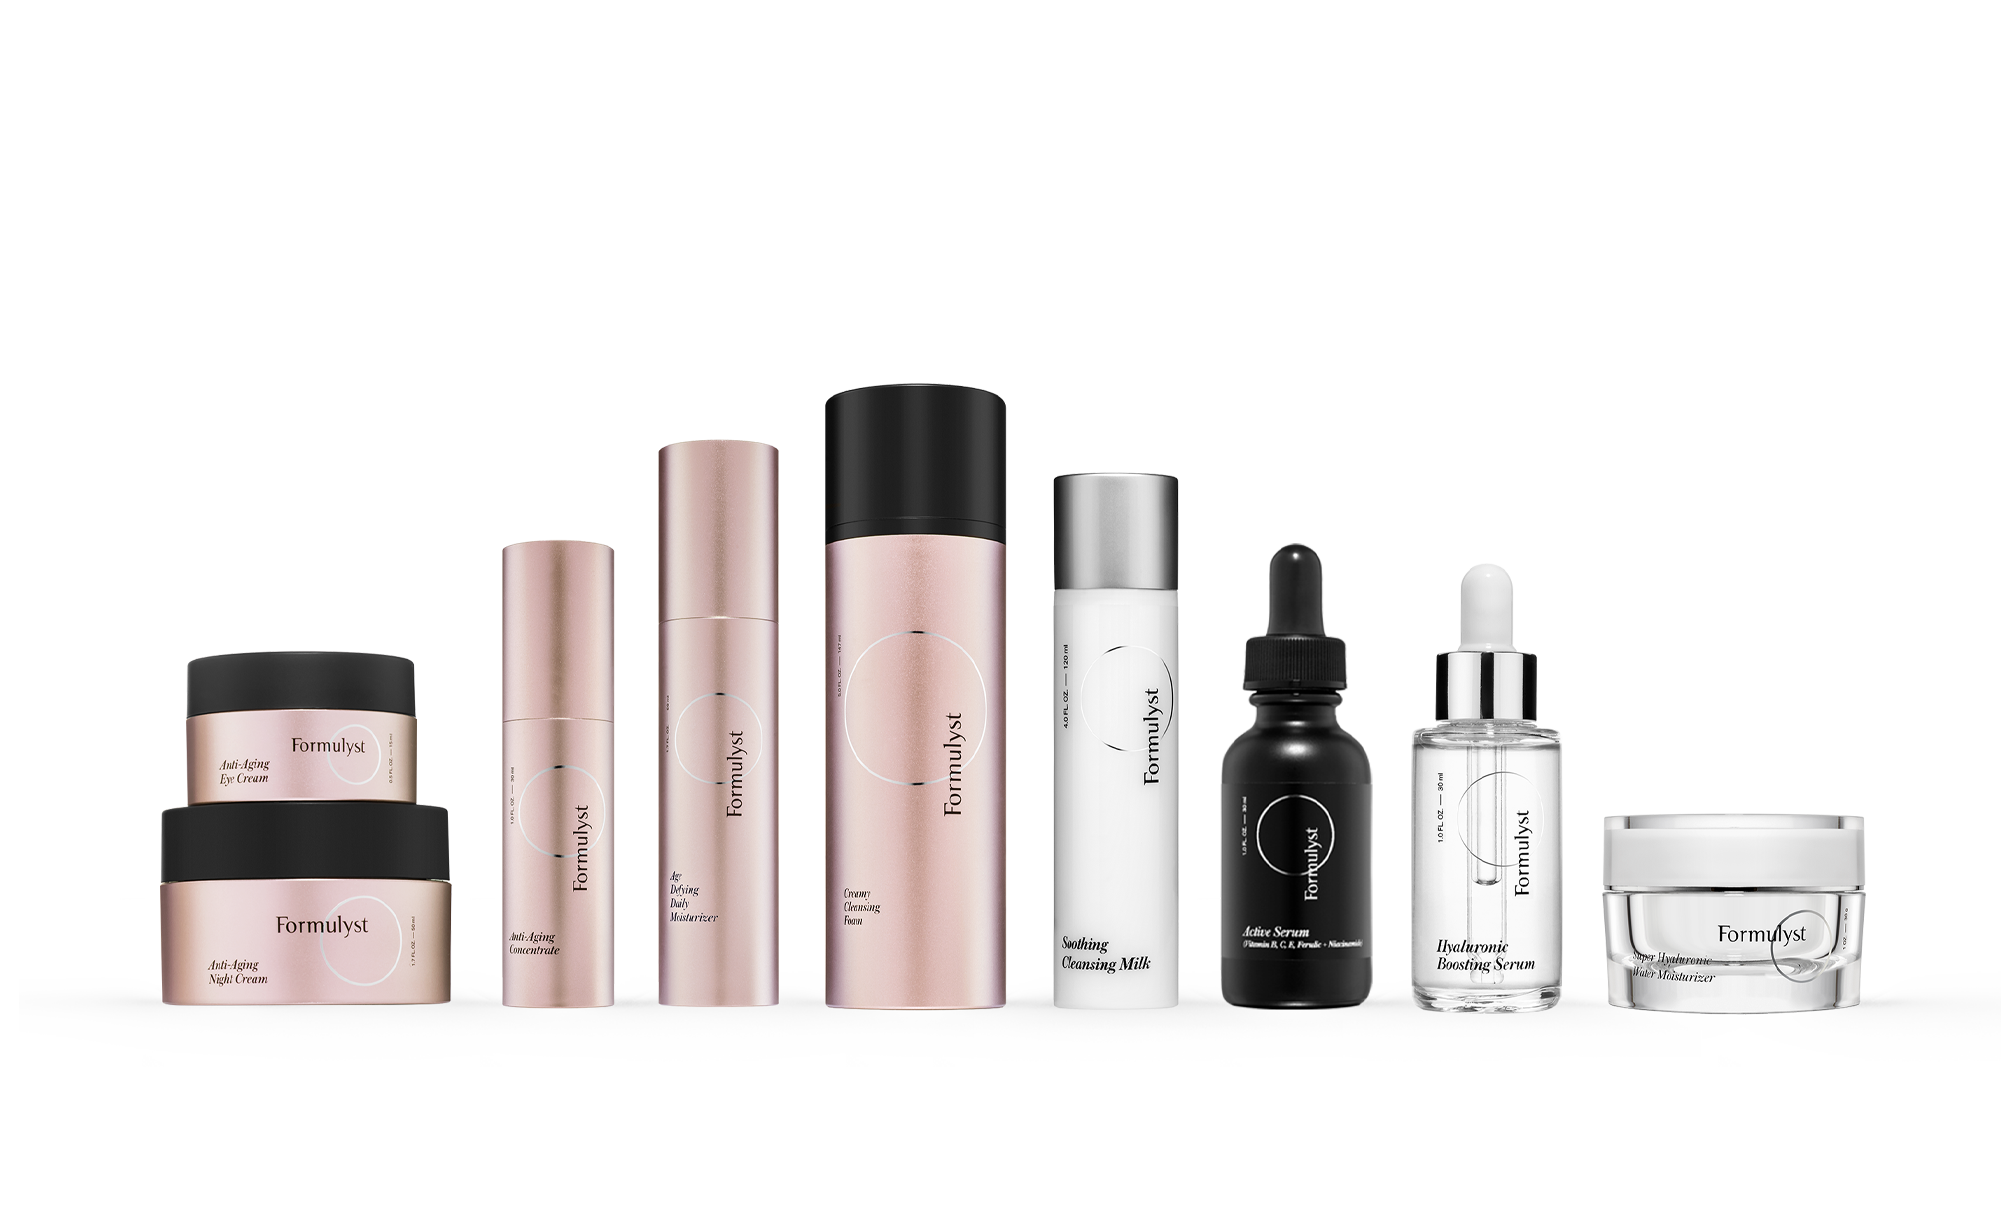 The Best Skincare Products Of 2020 The Dermatology Review In 2020 Best Skincare Products Skin Care Dermatology